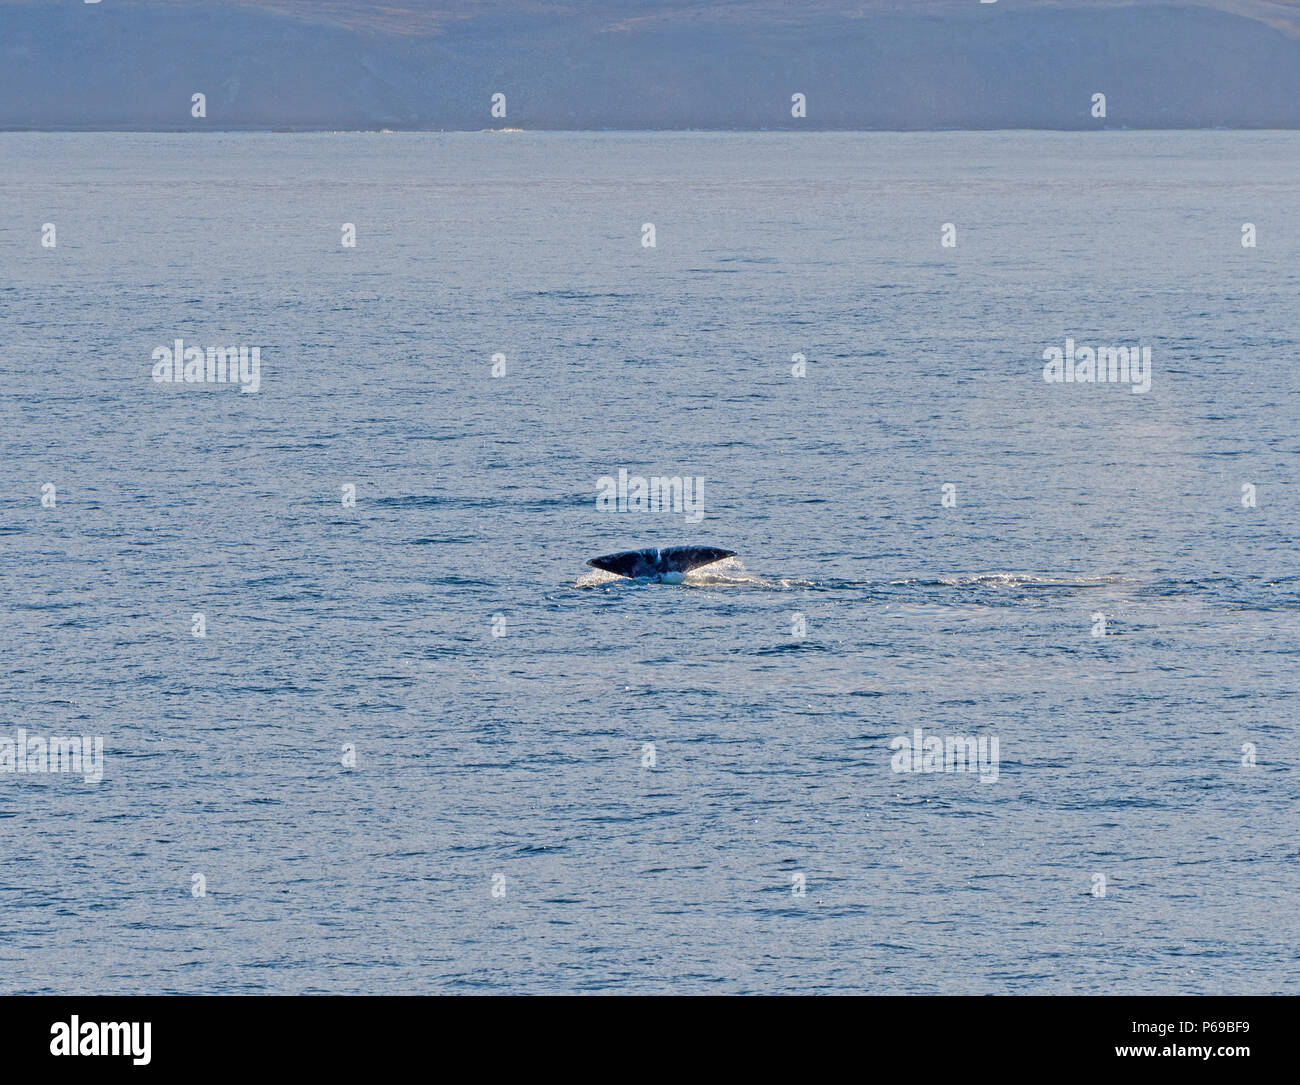 Bowhead whale flukes in the arctic in Isabella Bay of the  Ninginganiq National Wildlife Area on Baffin Island in Nunavut, Canada - Stock Image